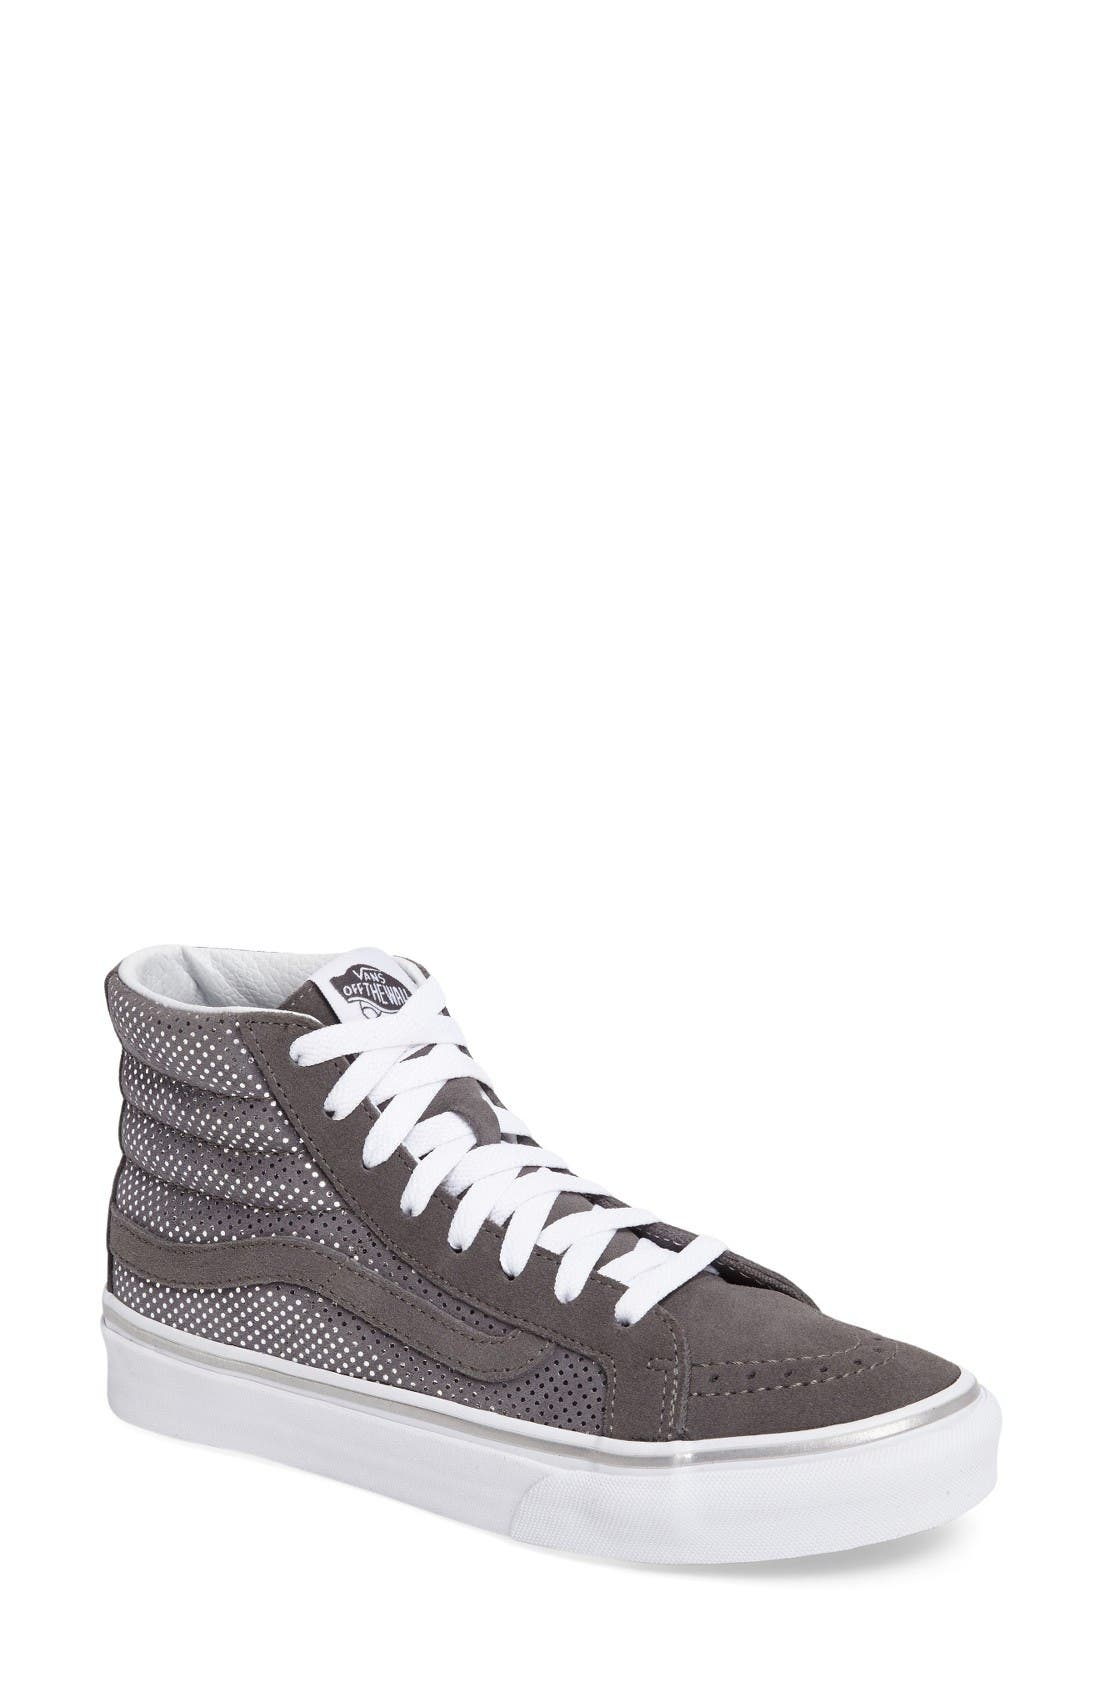 VANS Sk8-Hi Slim High Top Sneaker